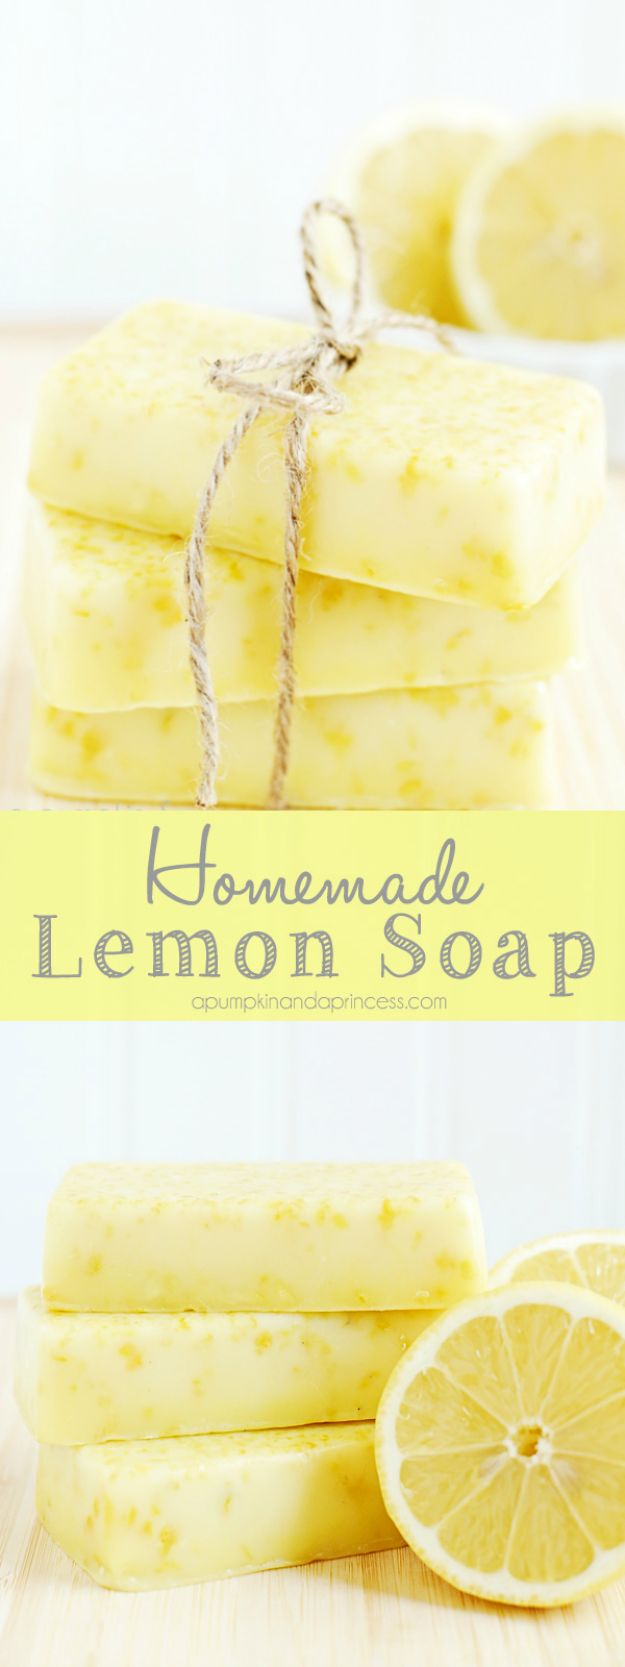 34 Spectacular Diy Soap Recipes Diy Projects For Teens